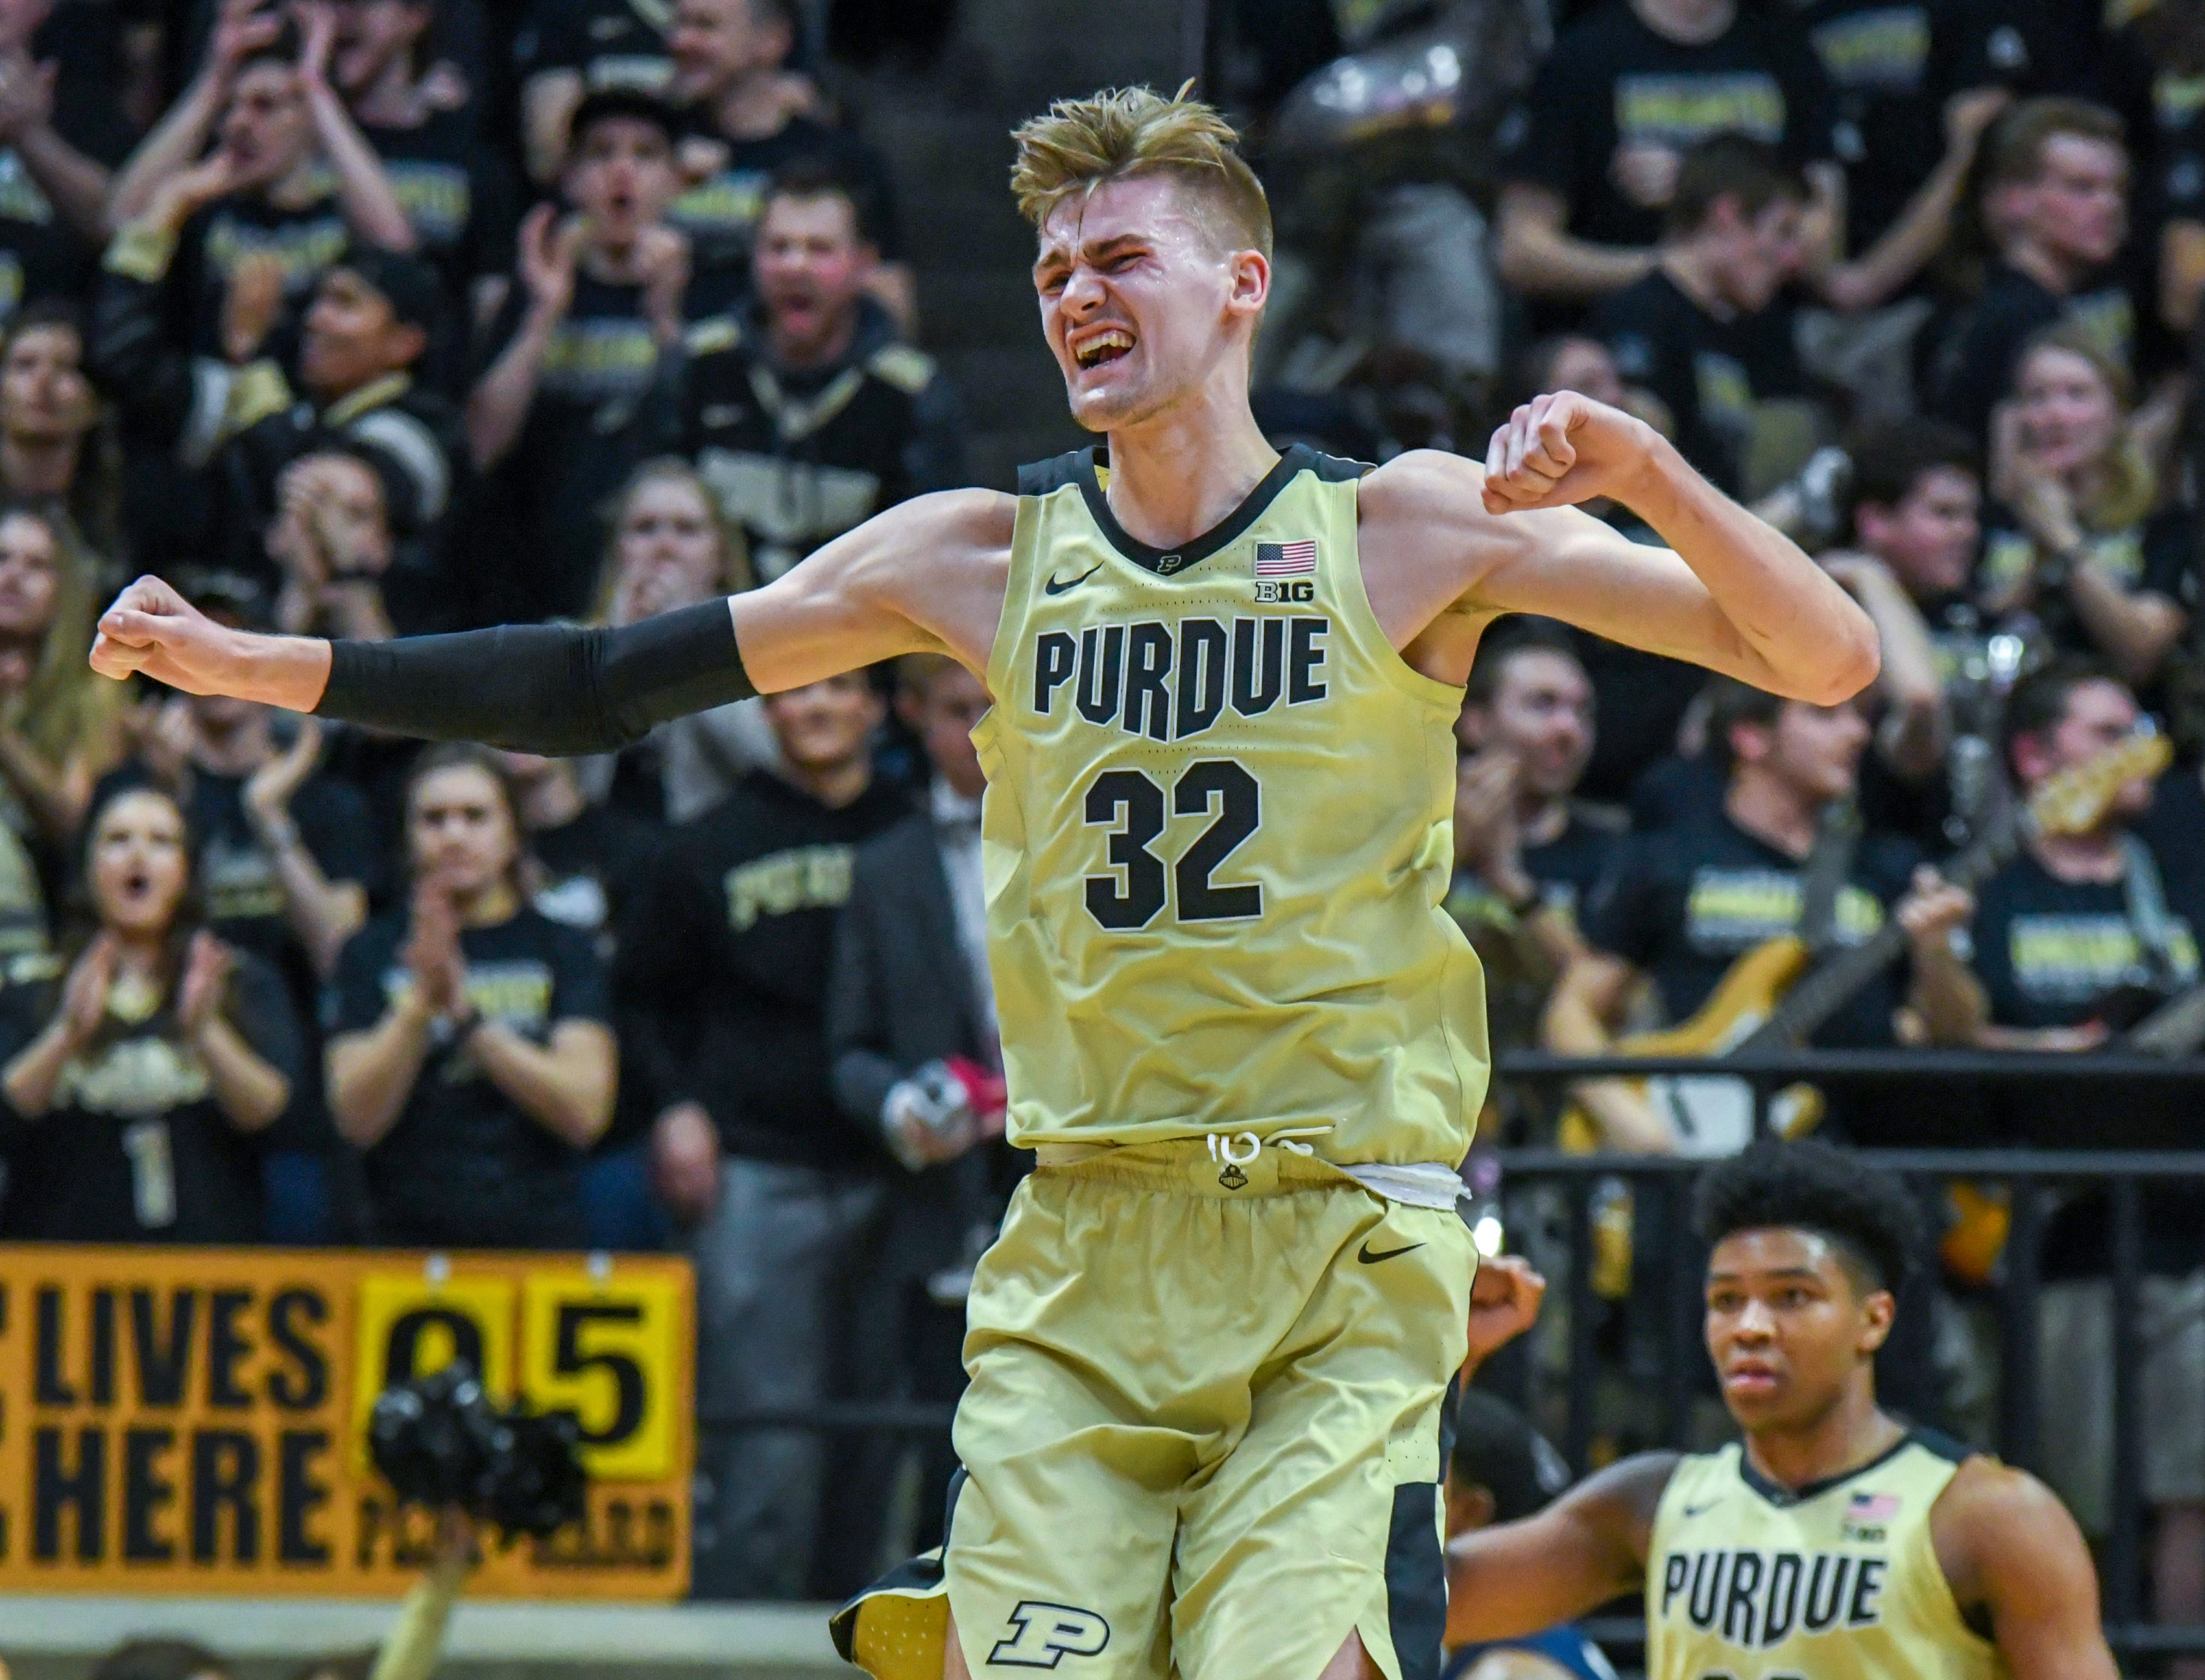 By Frank Oliver for the Journal and Courier --Purdue's Matt Haarms reacts to scoring a basket in the first half against Illinois on February 27, 2019 in West Lafayette.